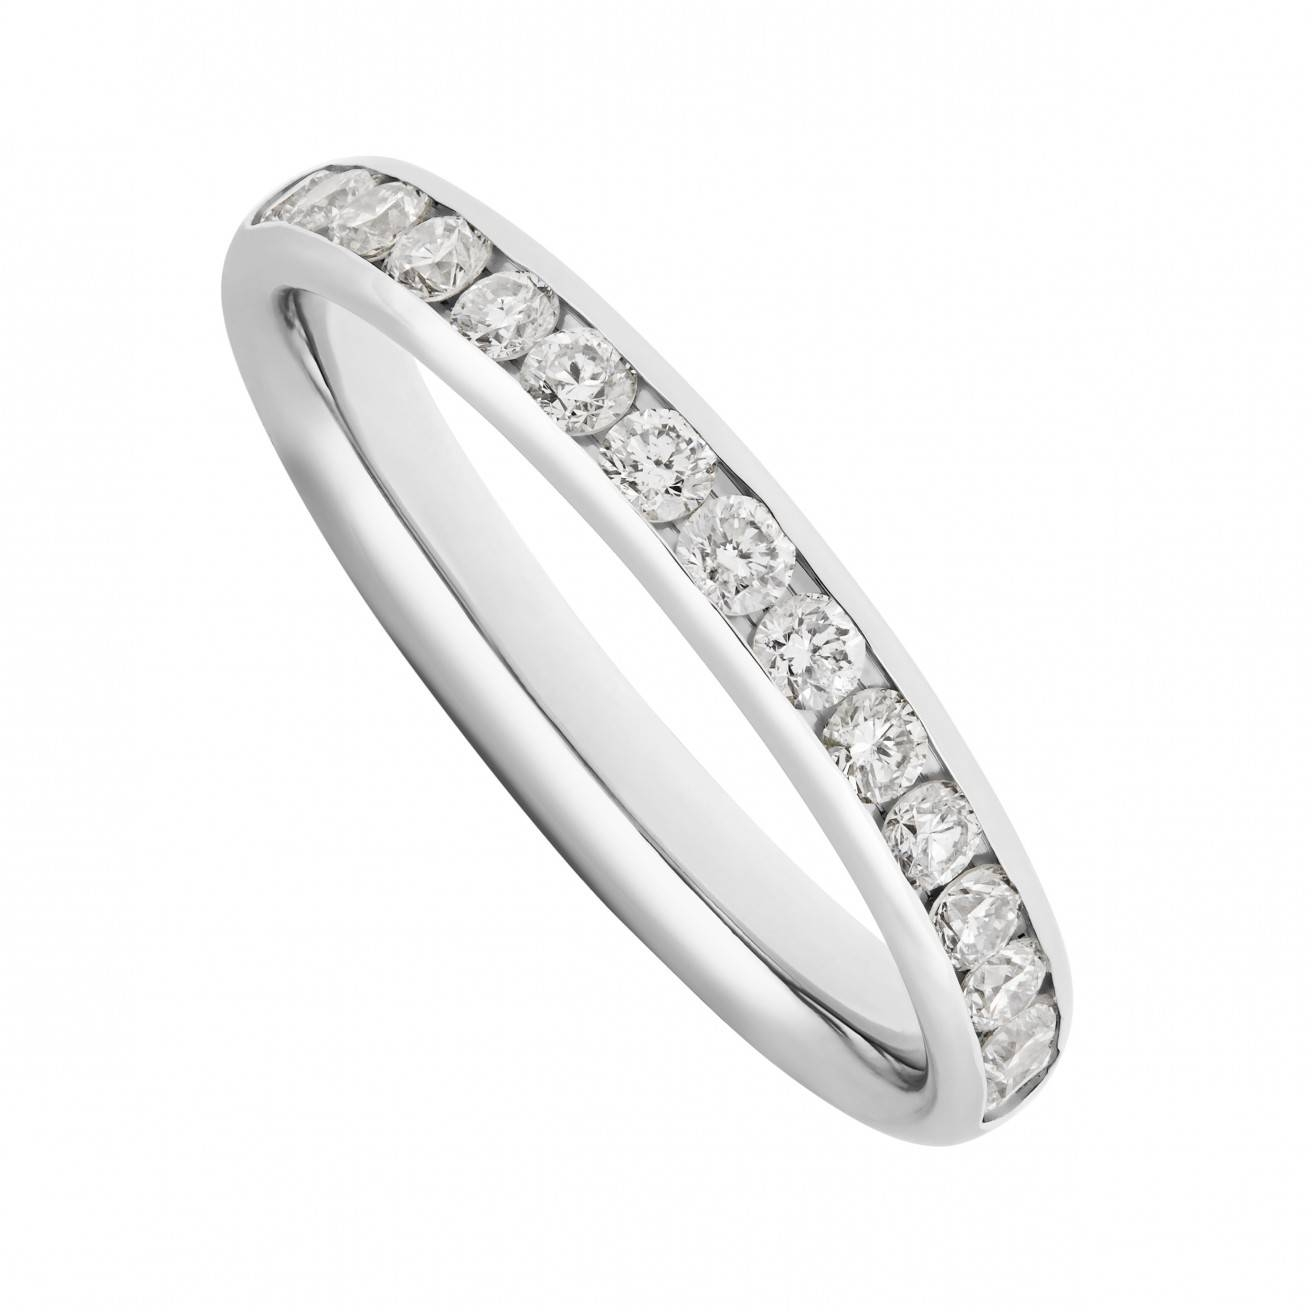 Buy Platinum Wedding Bands Online – Fraser Hart In Platinum Diamond Wedding Rings (View 2 of 15)